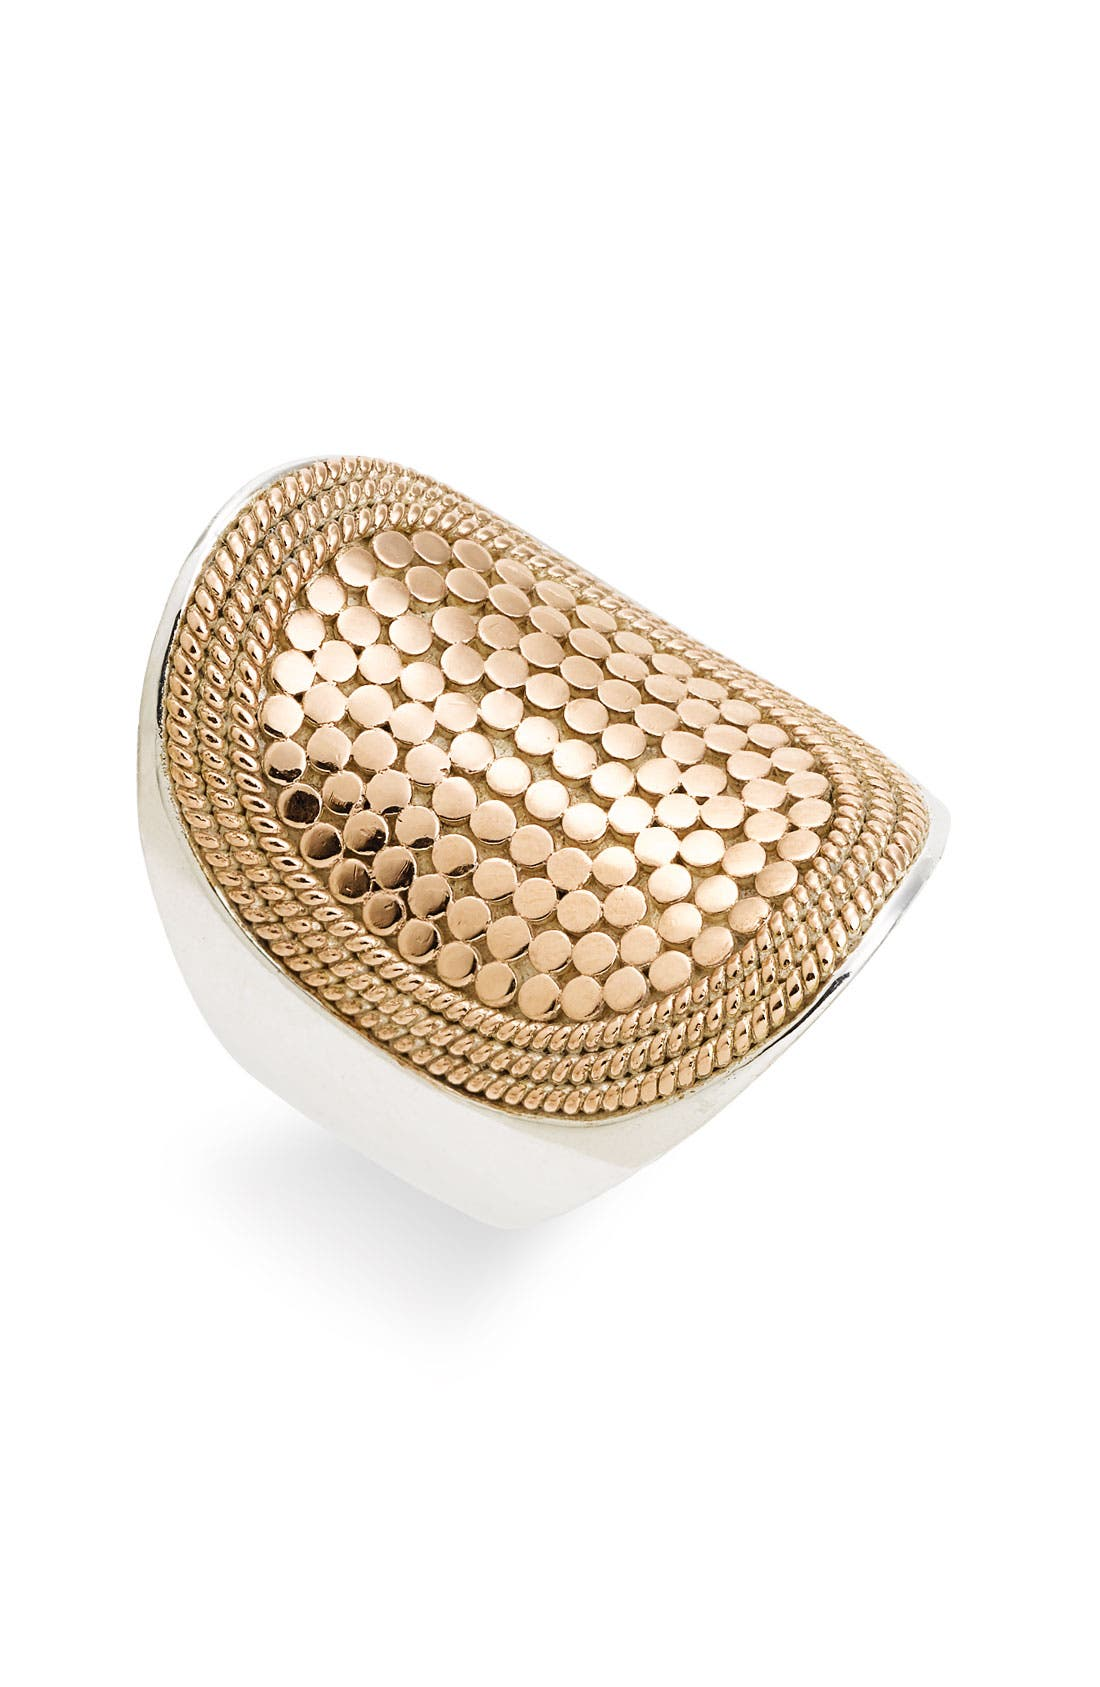 Alternate Image 1 Selected - Anna Beck 'Gili' Saddle Ring